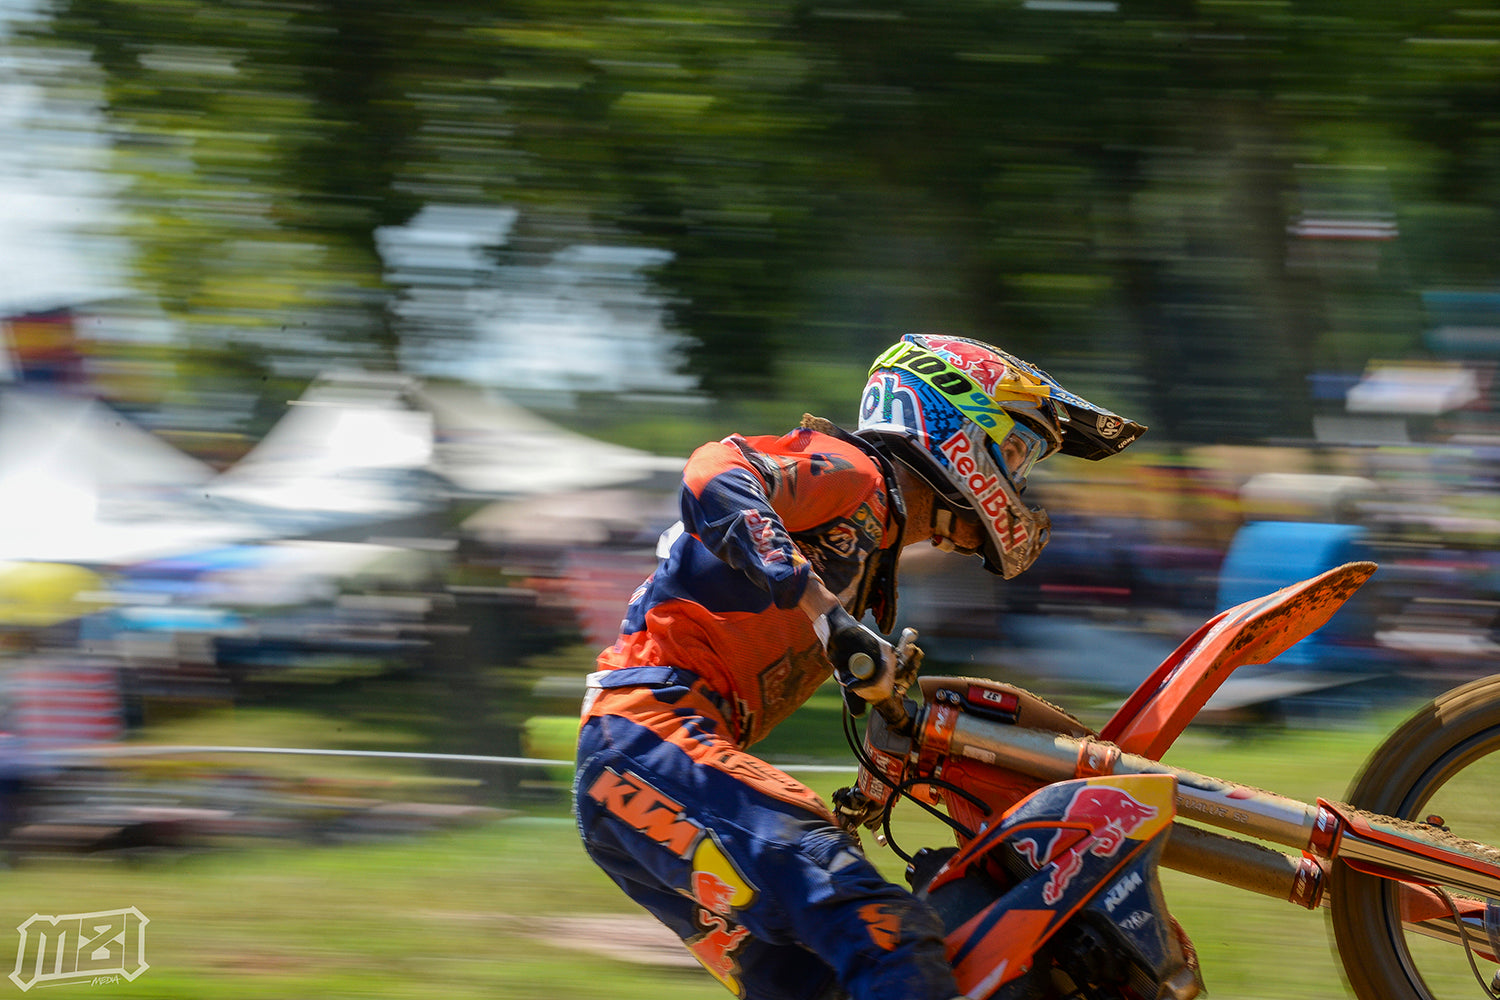 Marvin Musquin Wide Open